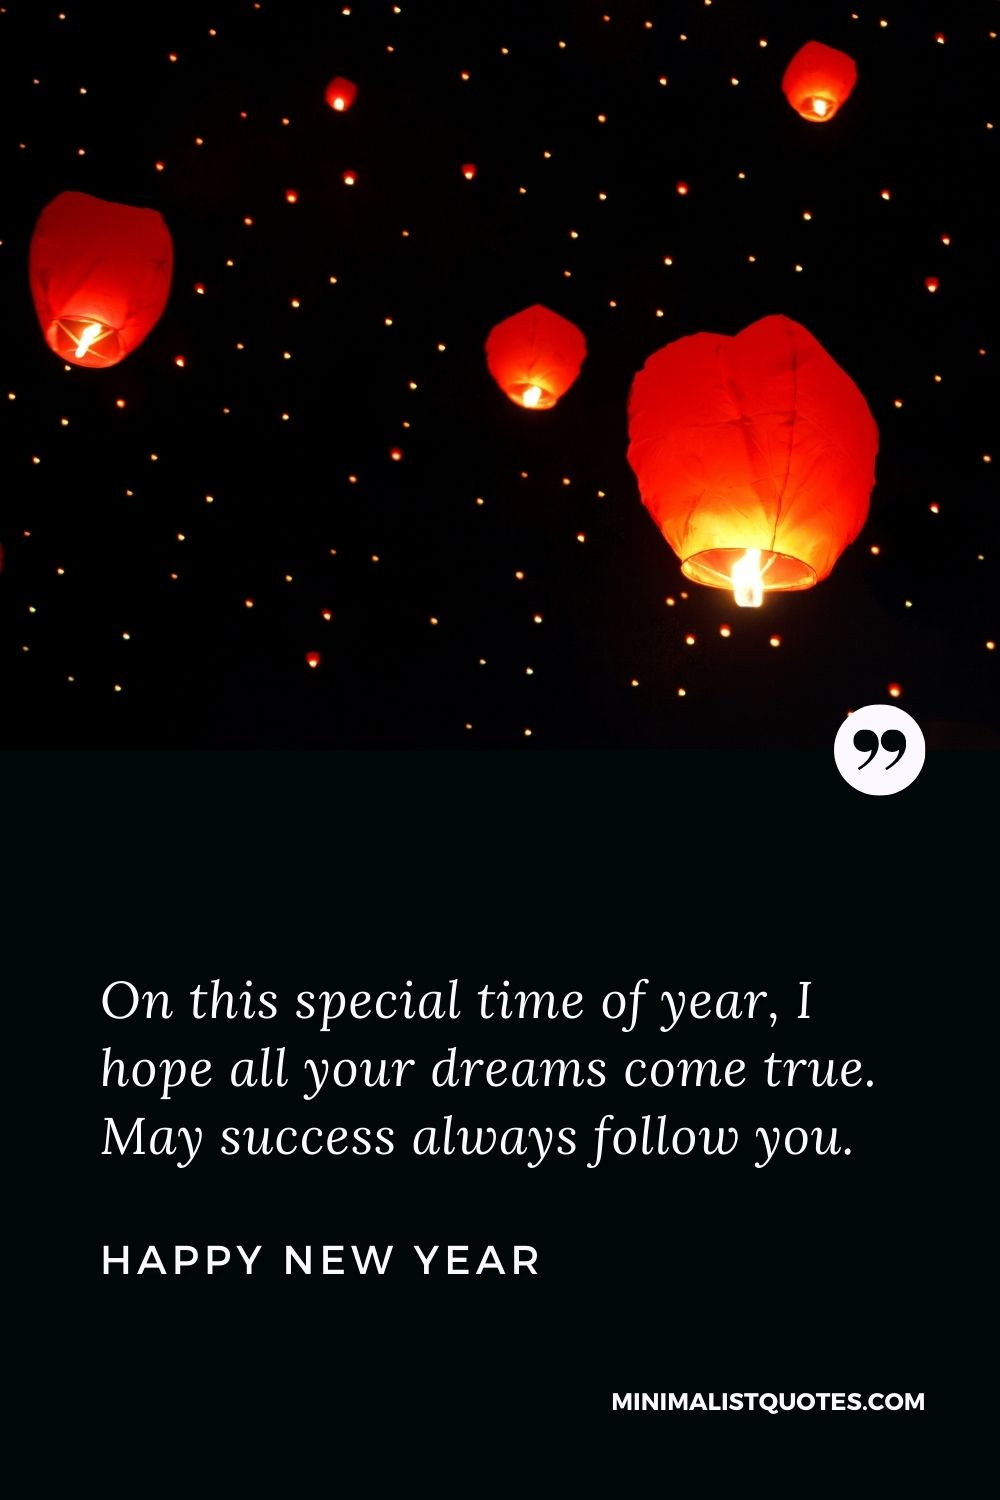 Happy New Year Wishes - On this special time of year, I hope all your dreams come true. May success always follow you.